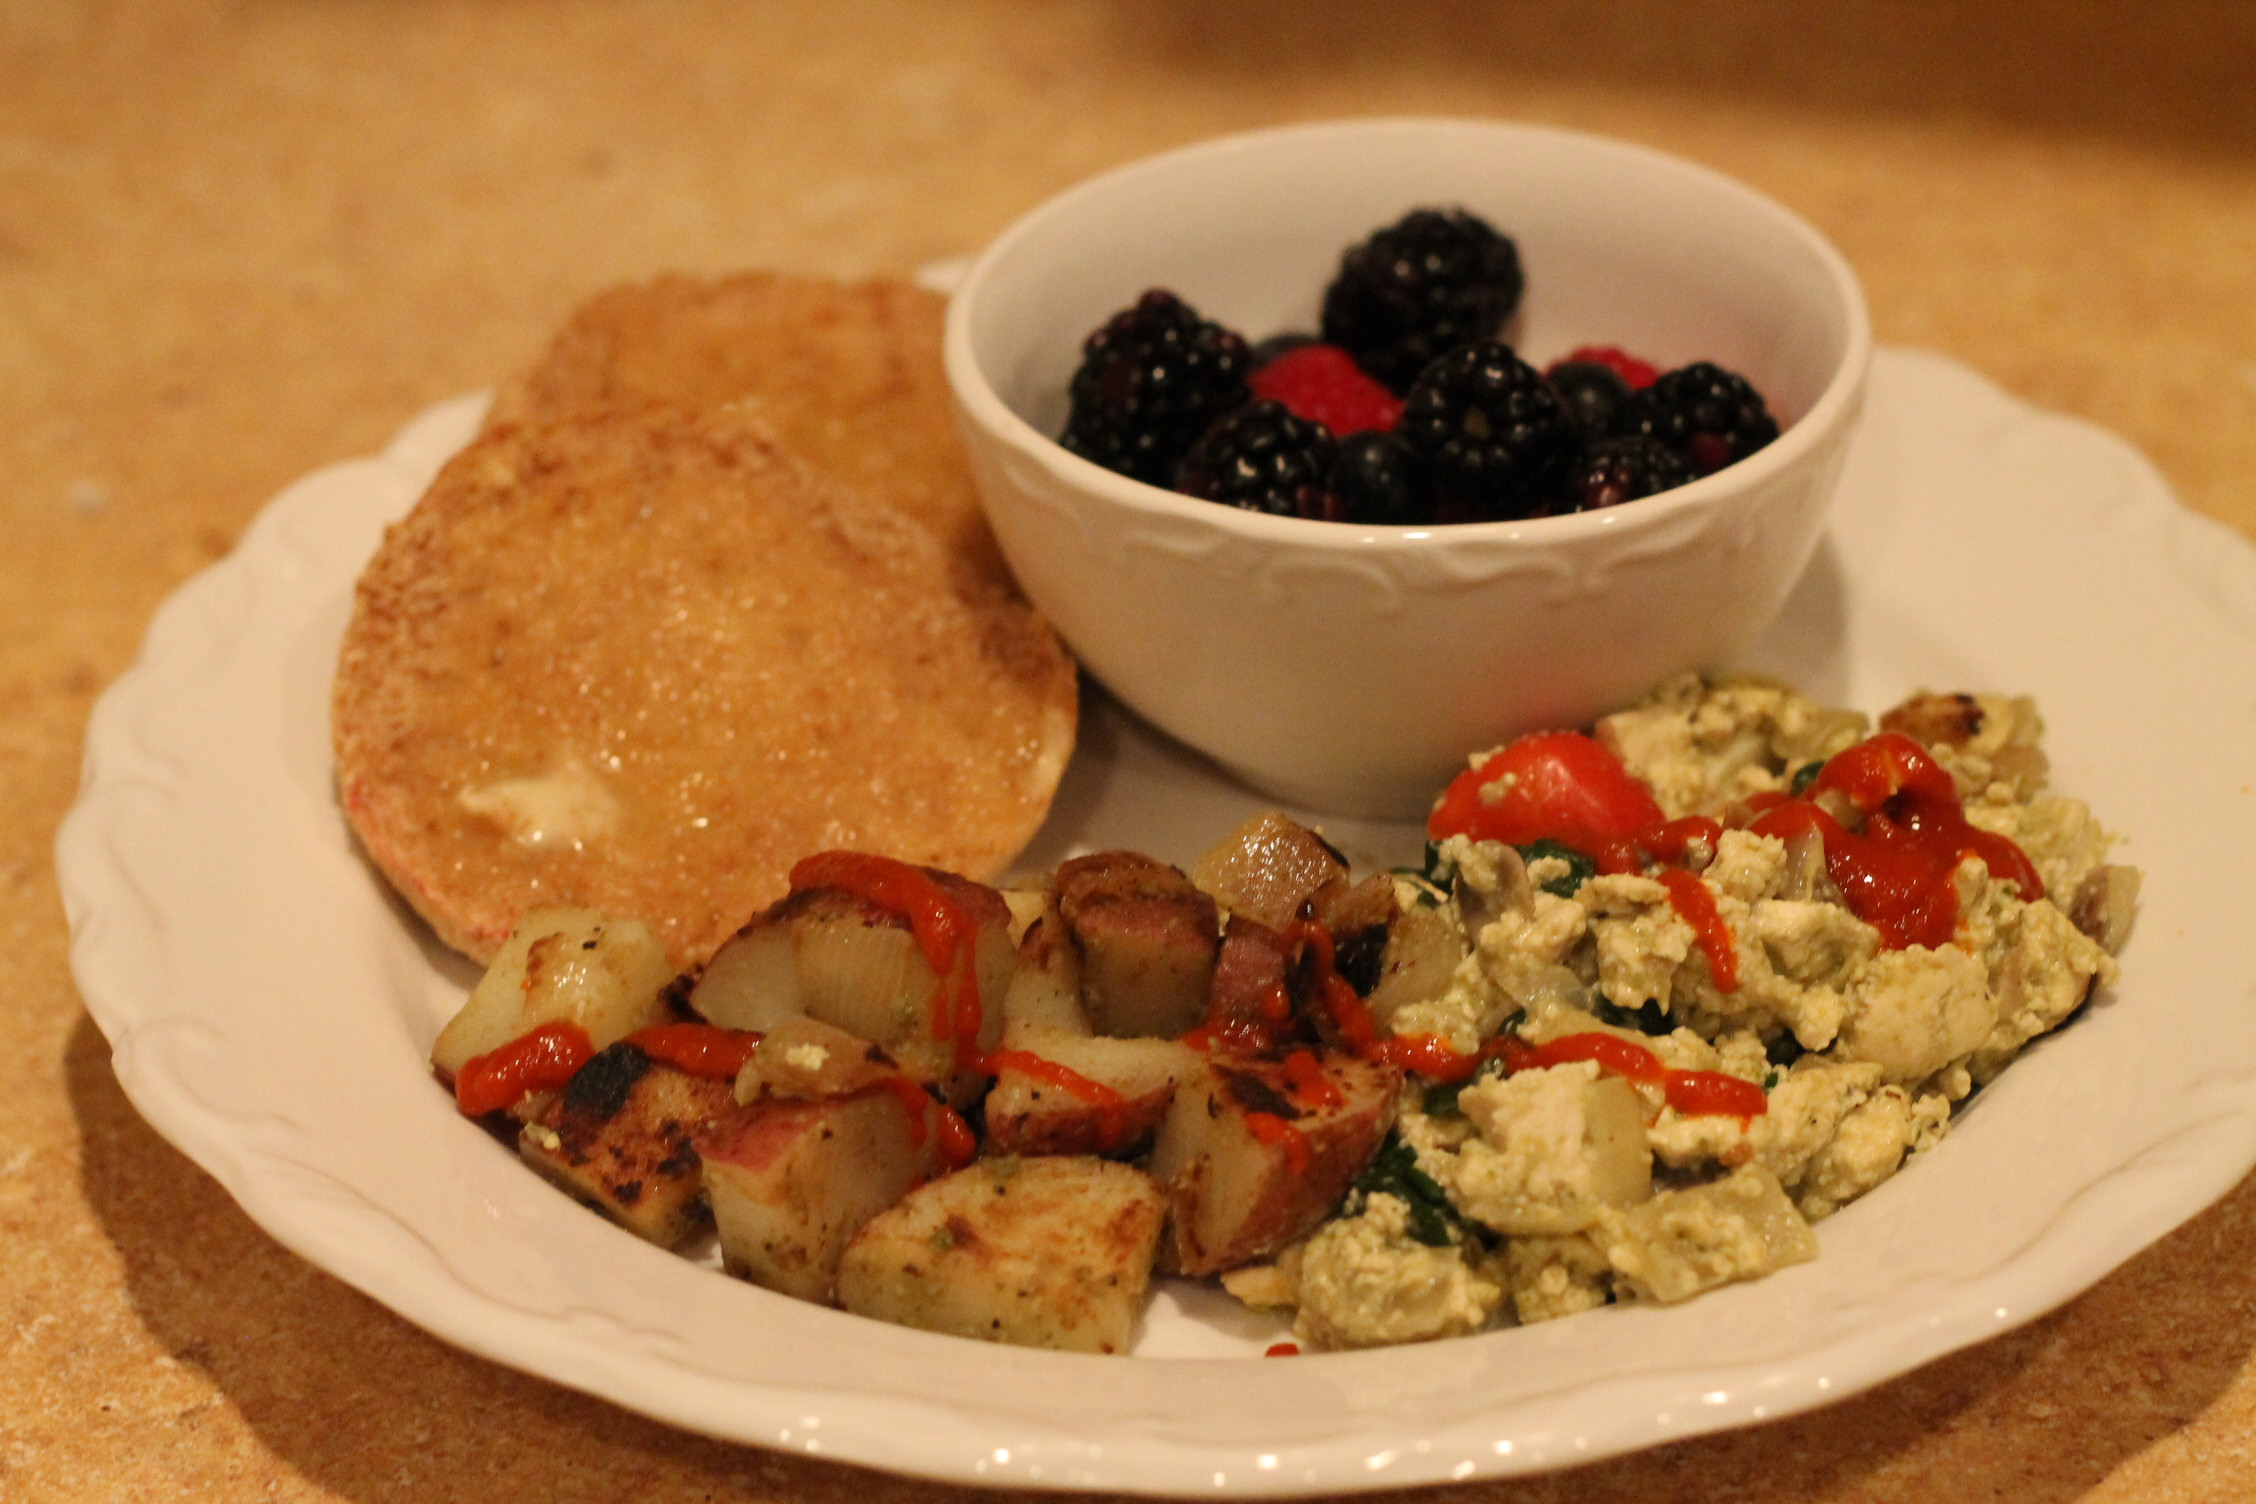 Breakfast: Berries, English Muffin, Hash Browns, Veggie-Pesto Tofu Scramble